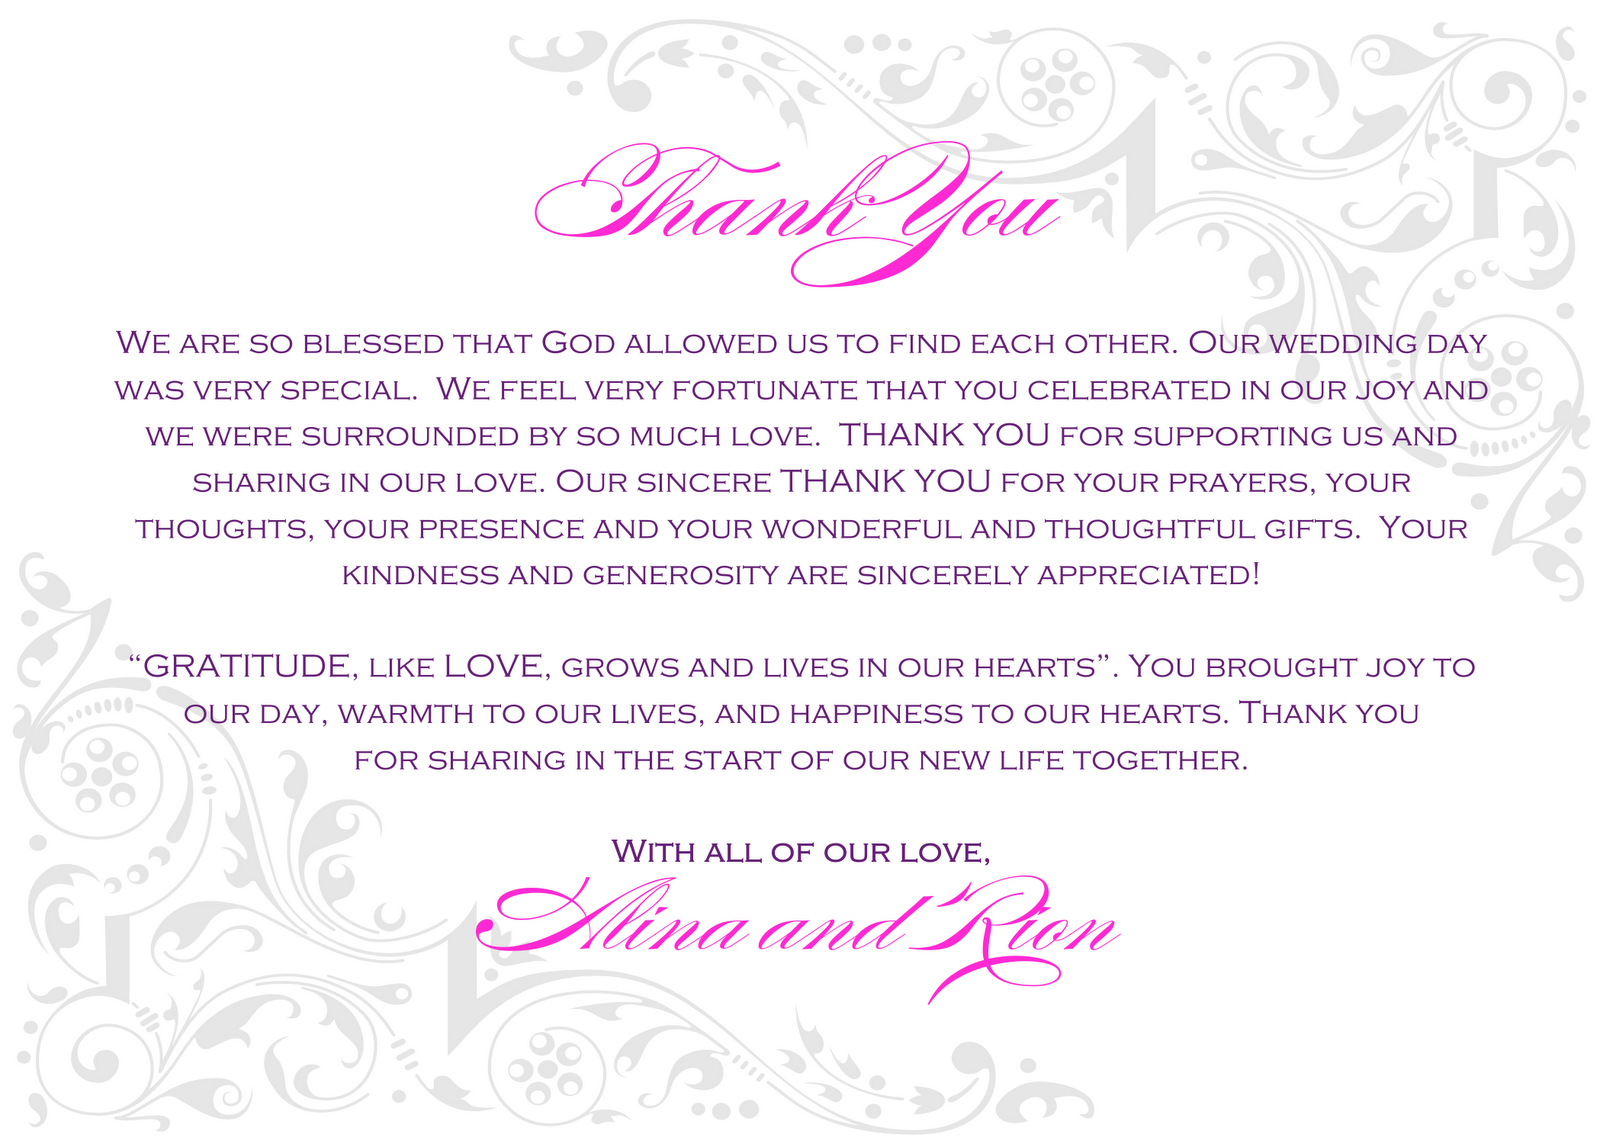 Sample graduation thank you letter thank you messages to teachers wedding thank you notes wording wedding wedding ideas thank altavistaventures Choice Image